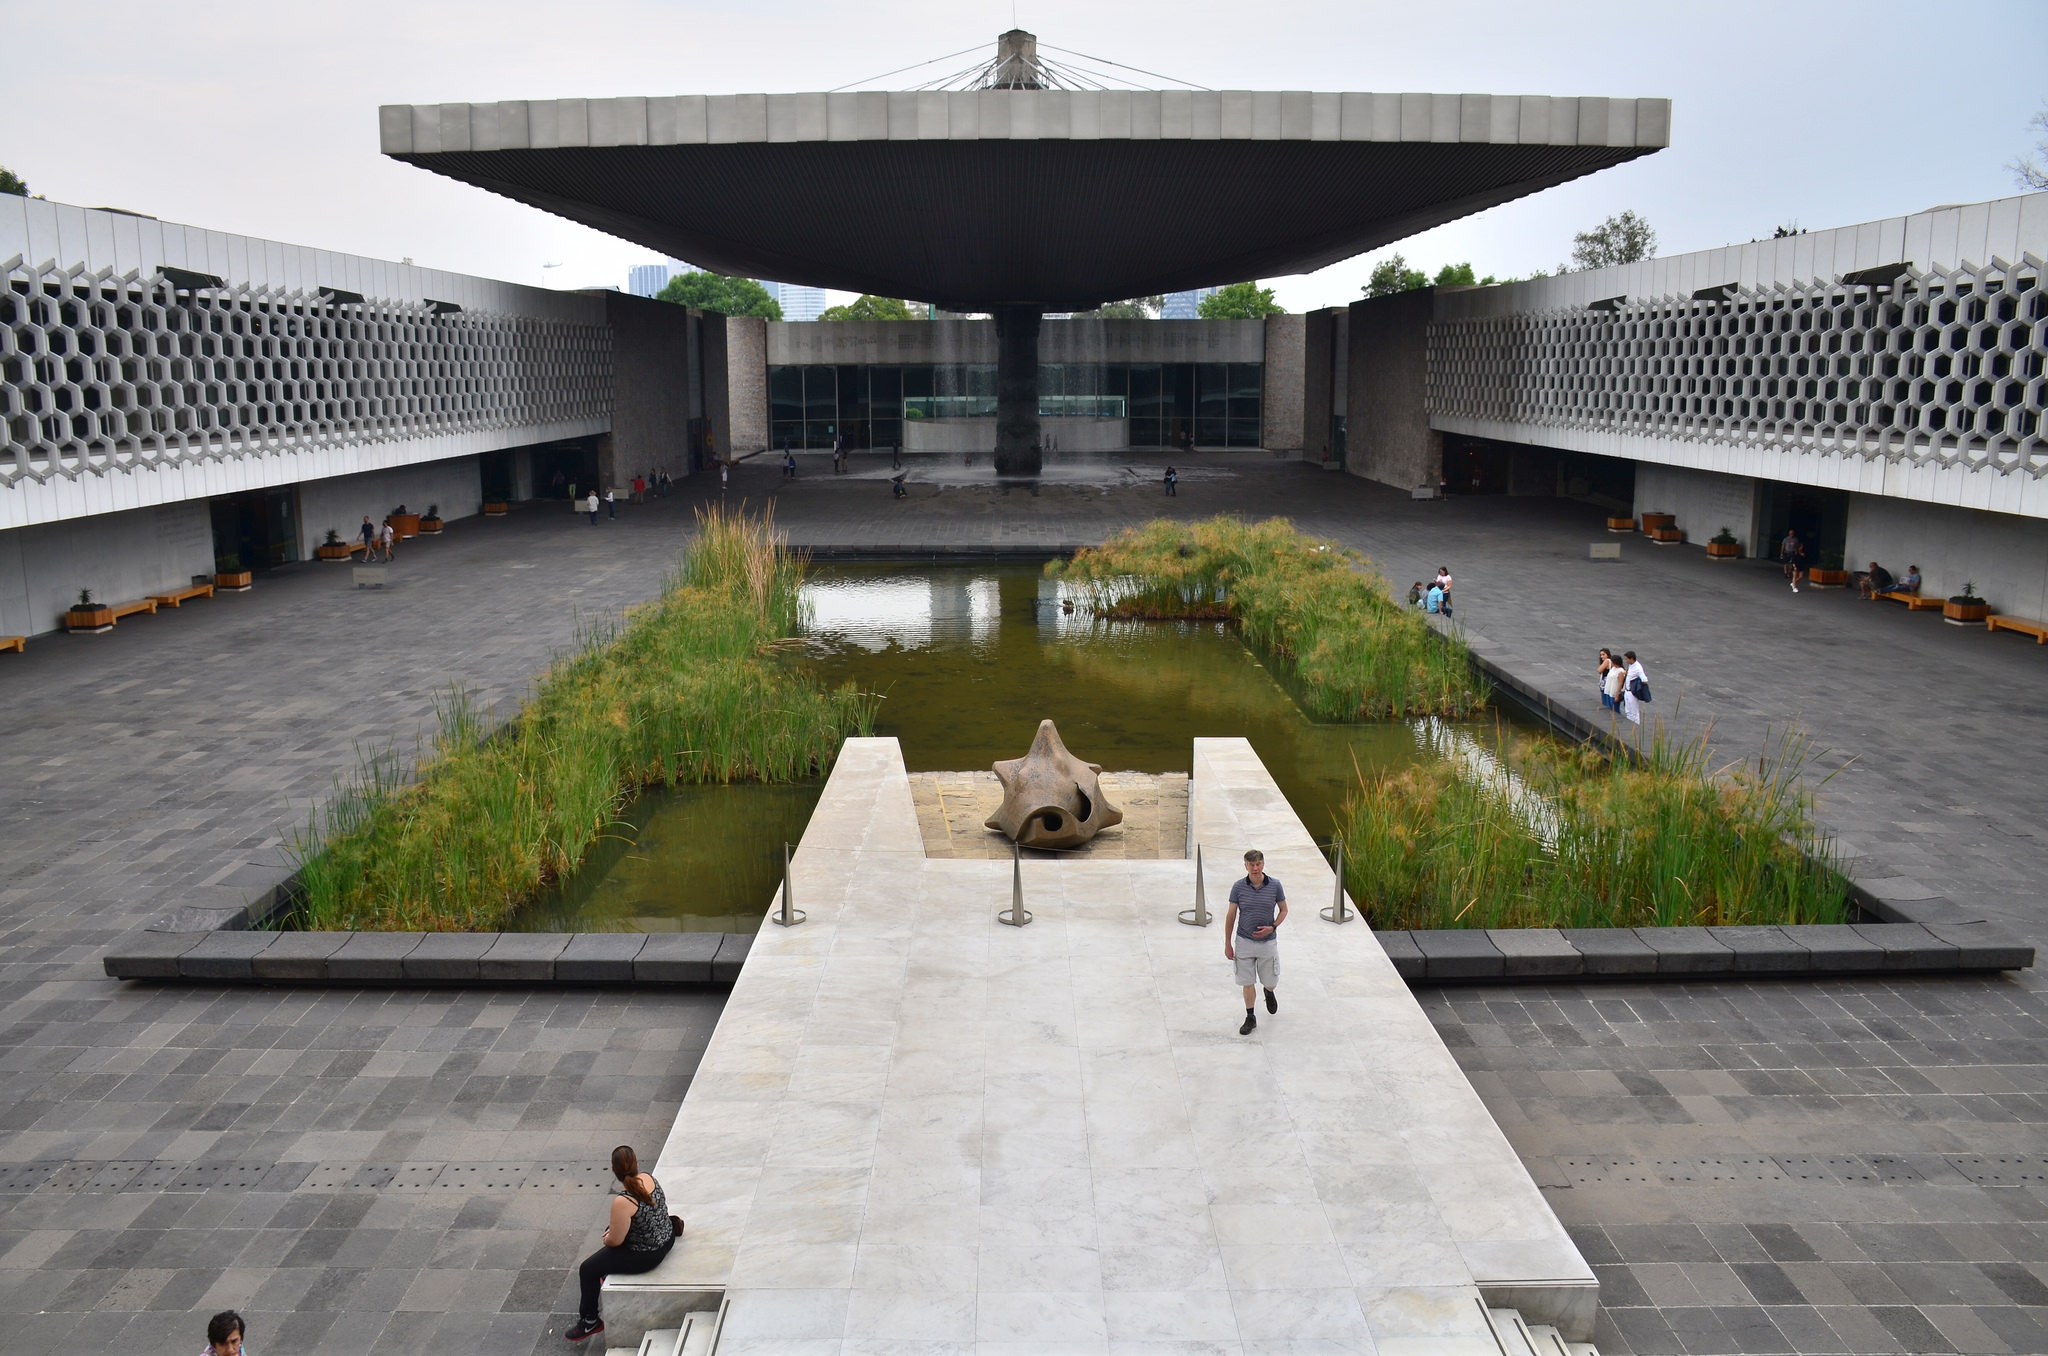 Museo De Arte Moderno In Mexico City The 10 Best Museums In Mexico City